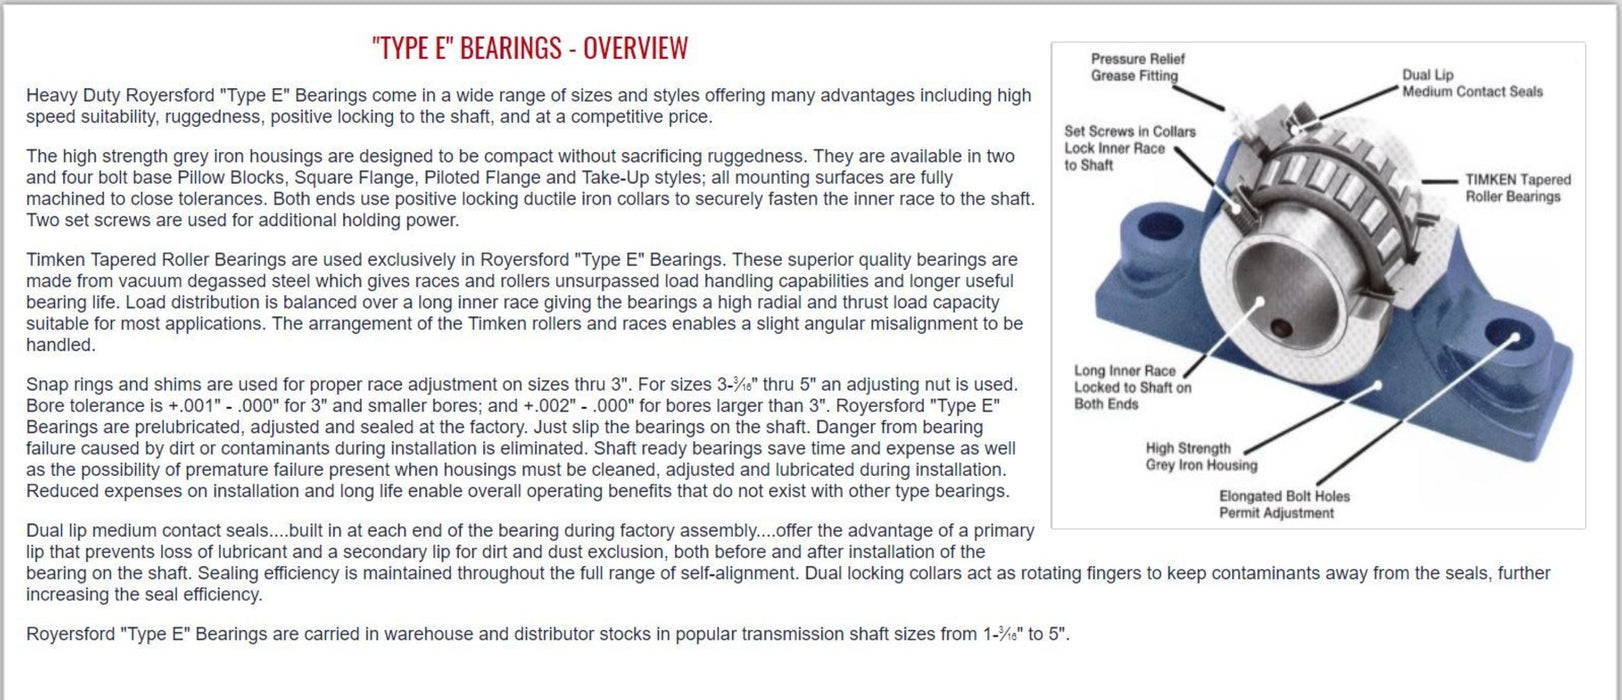 20-04-0500, ROYERSFORD TYPE E 2-Bolt Pillow Block Bearing, 5 with Timken Tapered Roller Bearings